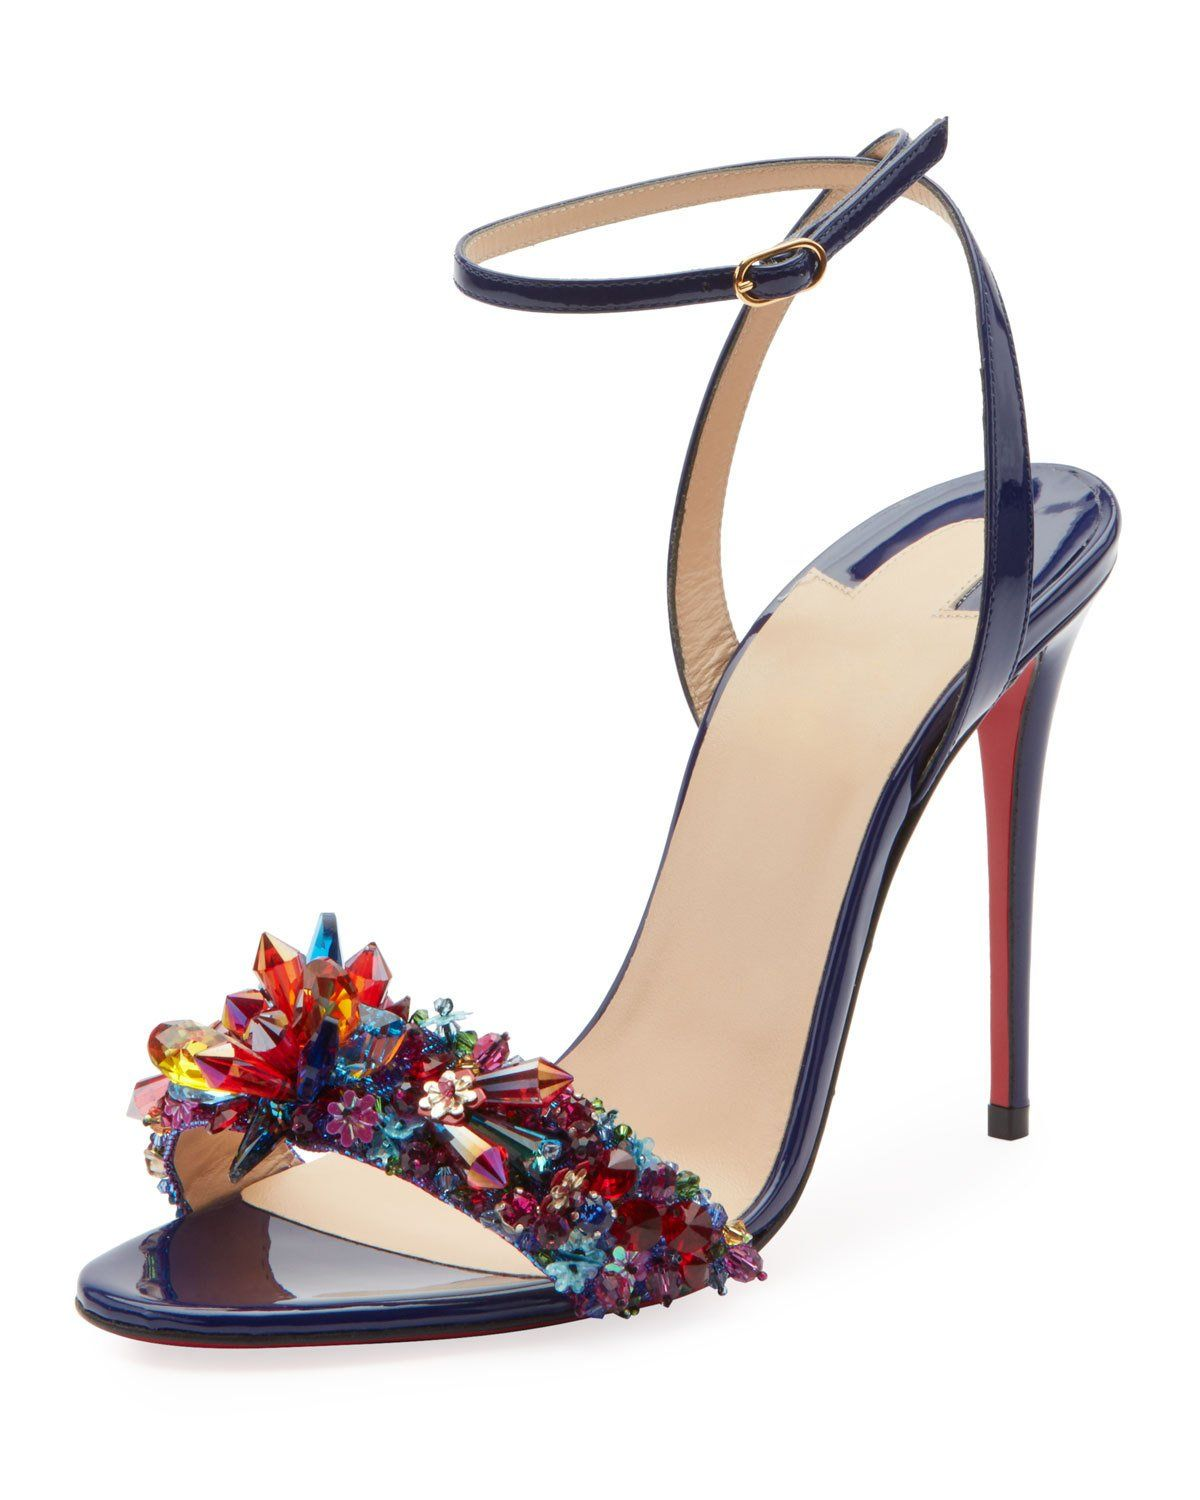 d37aff9a67c3 Christian Louboutin Multiqueen Crystal Patent Red Sole Sandals in ...